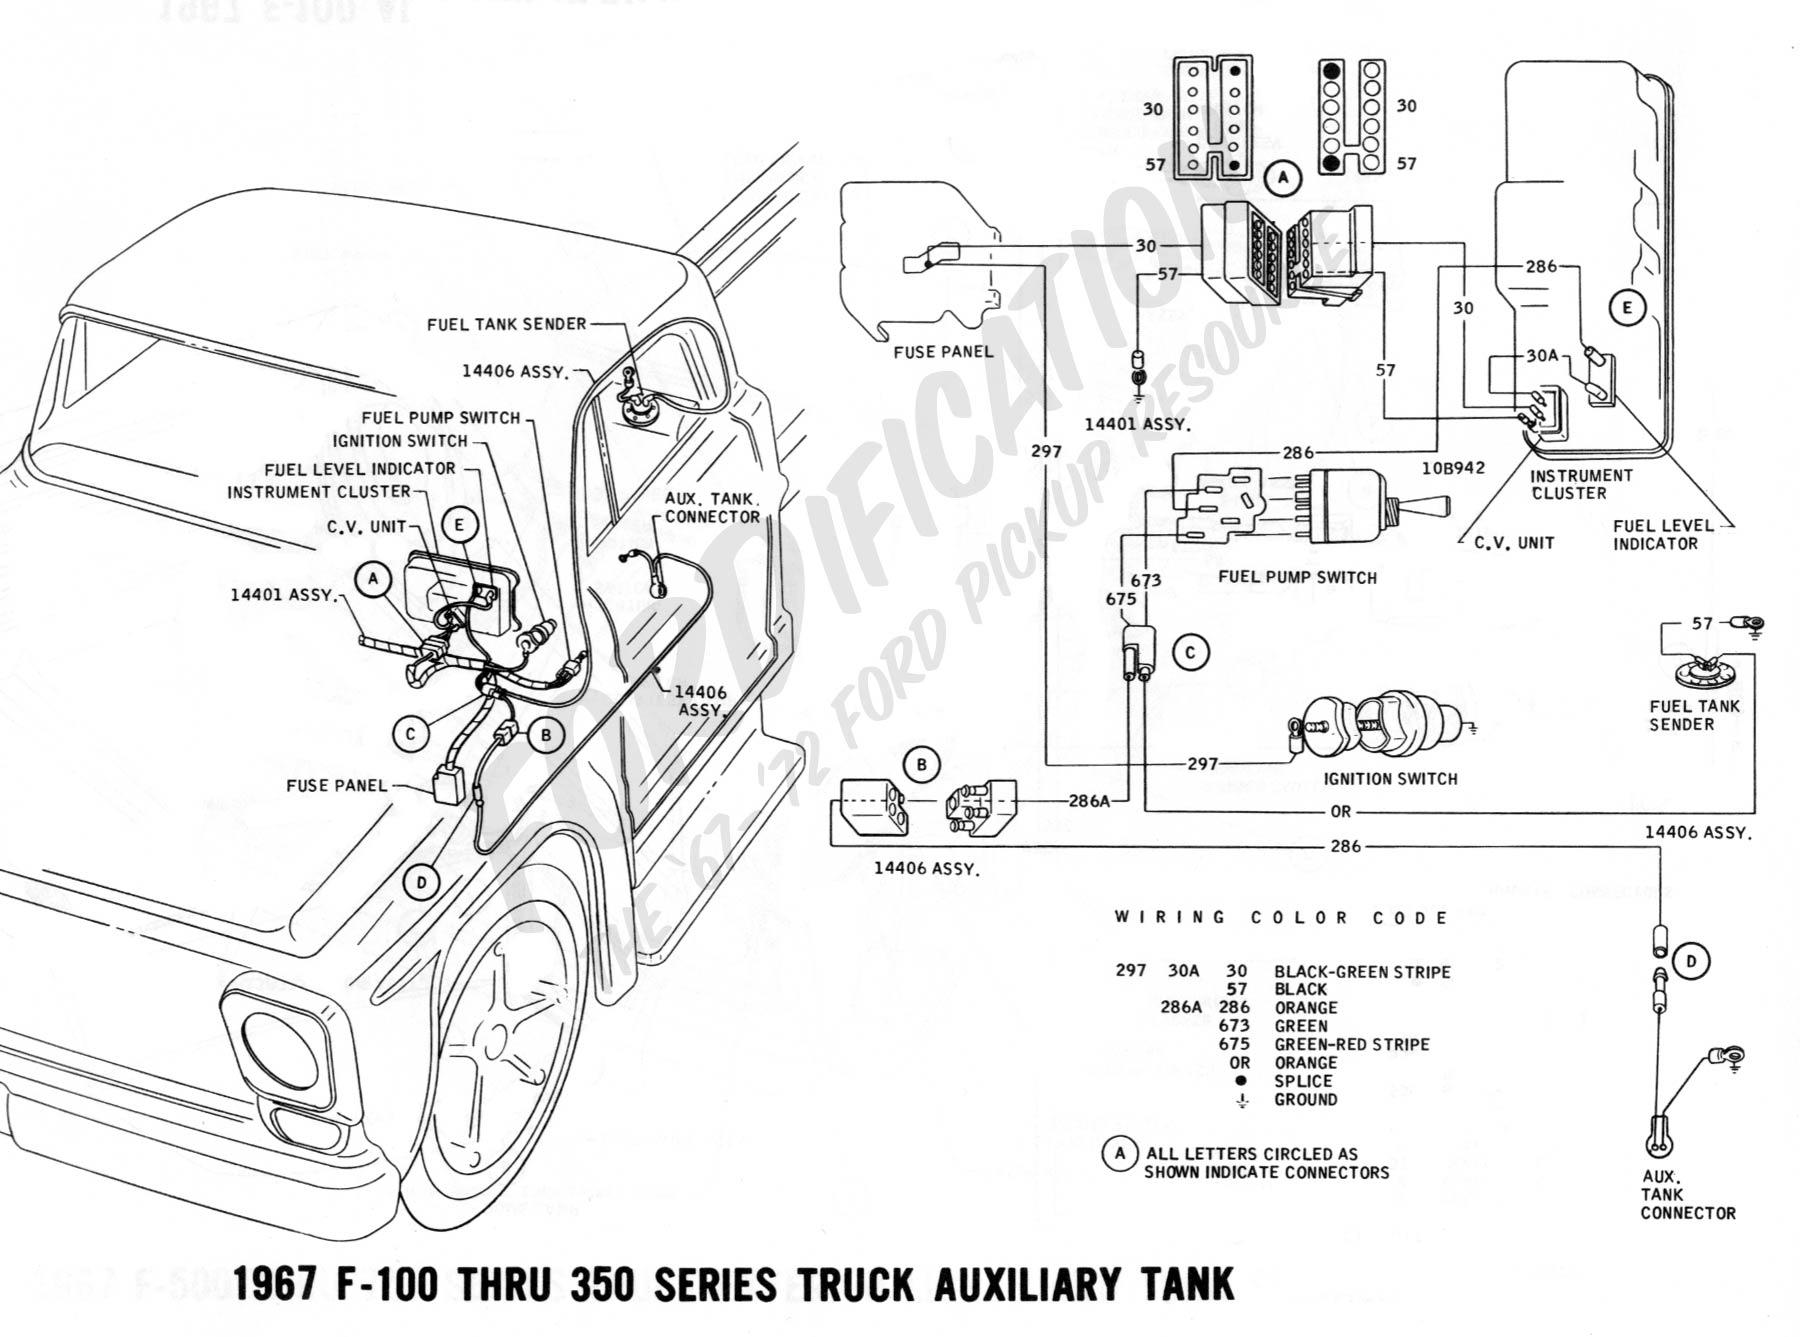 wiring 1967auxtank ford truck technical drawings and schematics section h wiring ford 390 engine wiring diagram at readyjetset.co